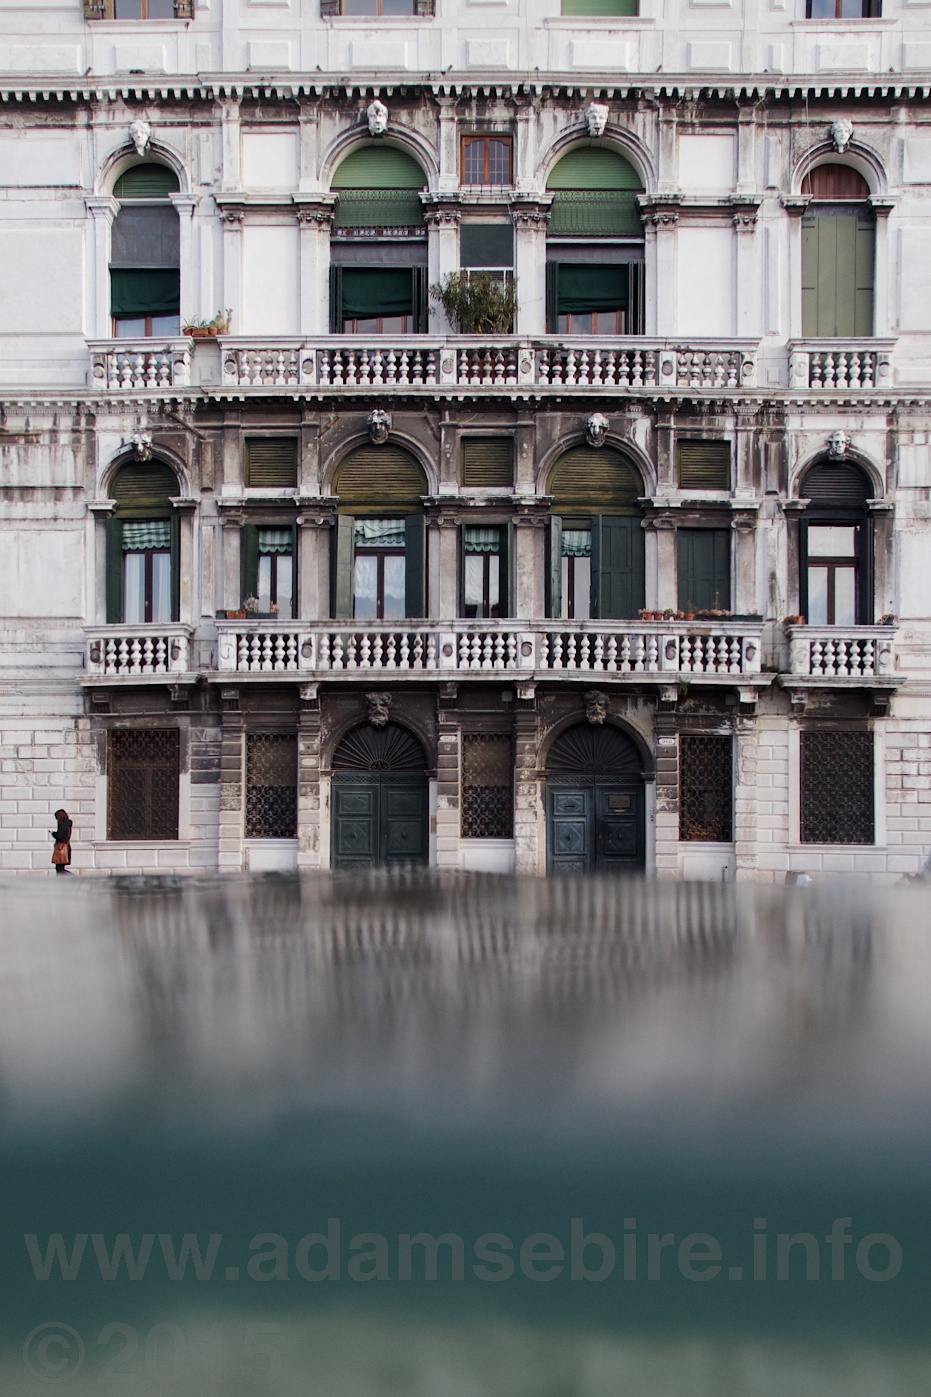 Venice and climate change - sea level rise 6.jpg